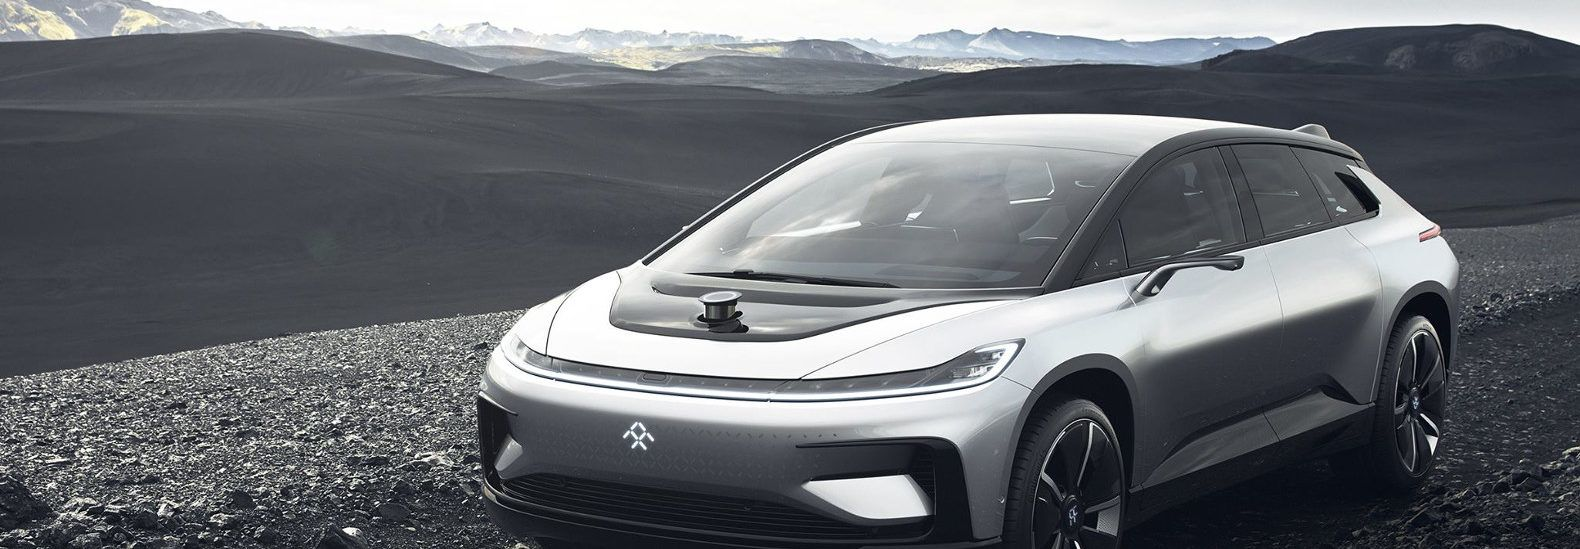 Faraday Future S Ff91 Smashes Speed Record Of Tesla Model S In